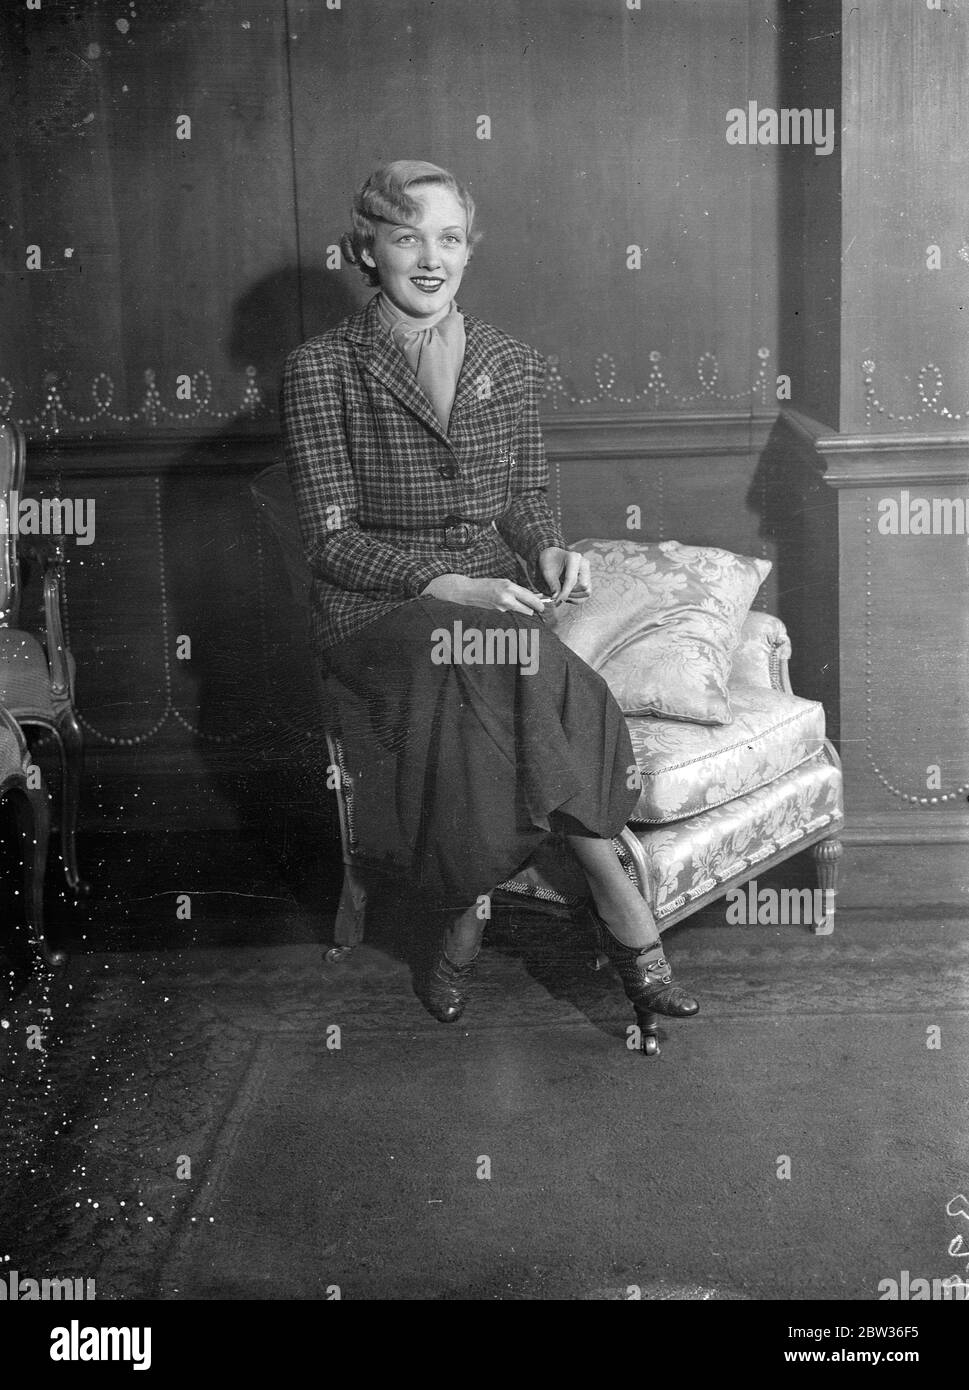 Charlie Chaplin ' s leading lady in London . Miss Virginia Cherrill , who played the part of the blind girl of ' City Lights ' opposite Charlie Chaplin , is in London . This is her first visit to England . 20 November 1933 Stock Photo